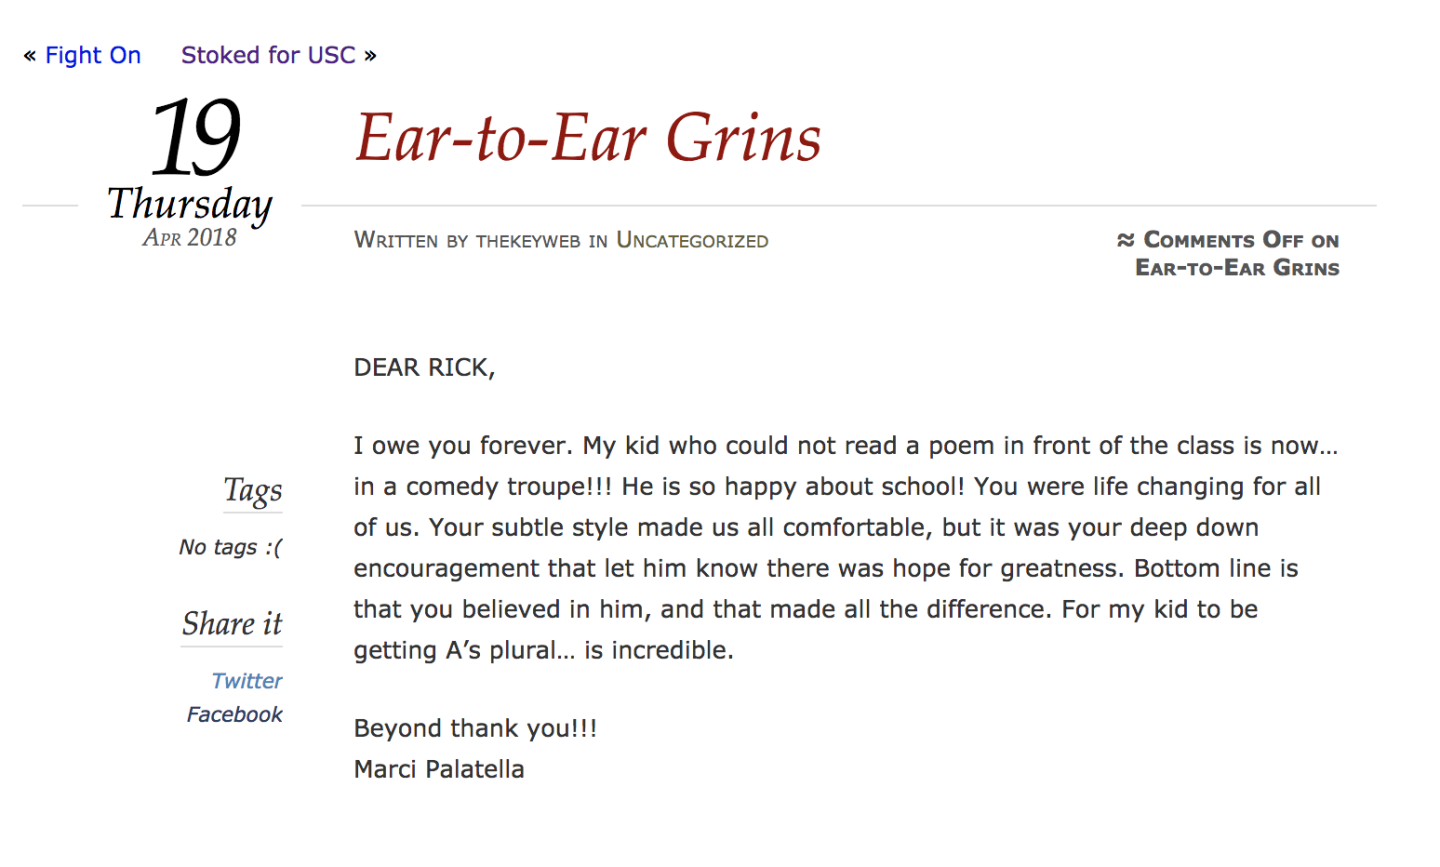 """Ear-to-Ear Grin"". Marci Palatella's testimonial on The Key Worldwide's website. Palatella was indicted in the college admissions scandal on March 12th, 2019."